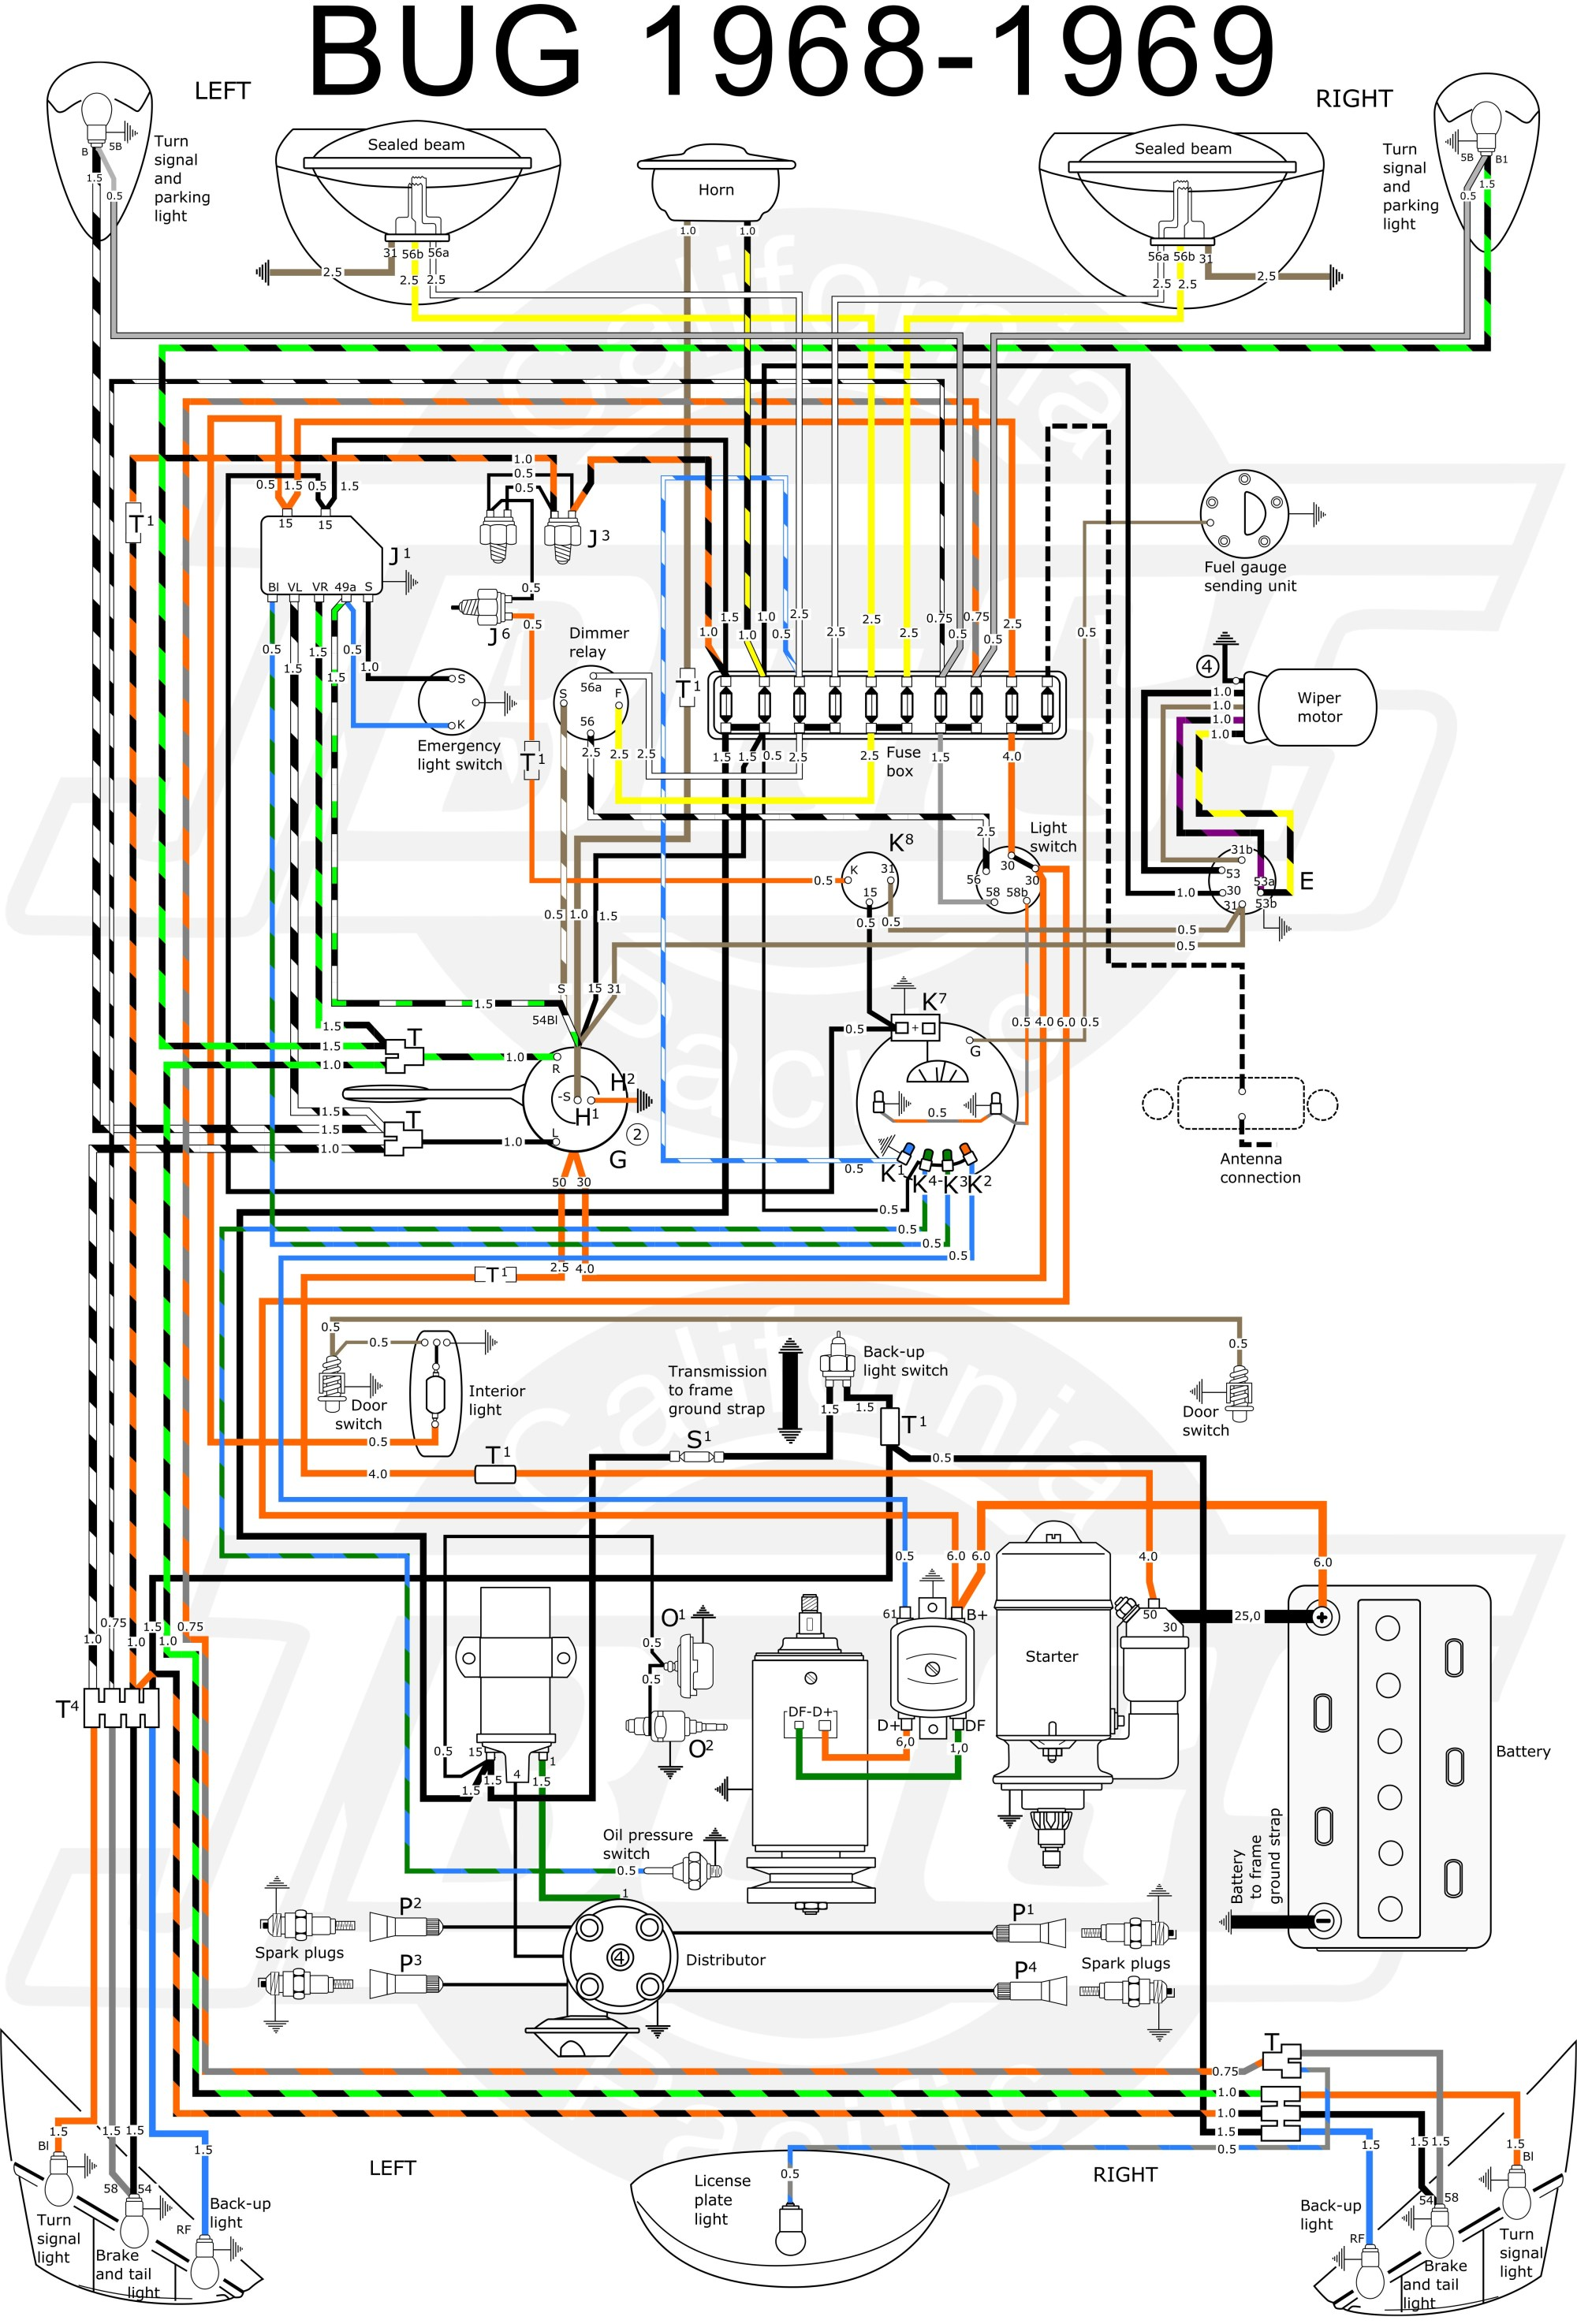 hight resolution of vw engine wiring harness wiring diagram used58 vw bus wiring harness wiring diagram vw engine wiring